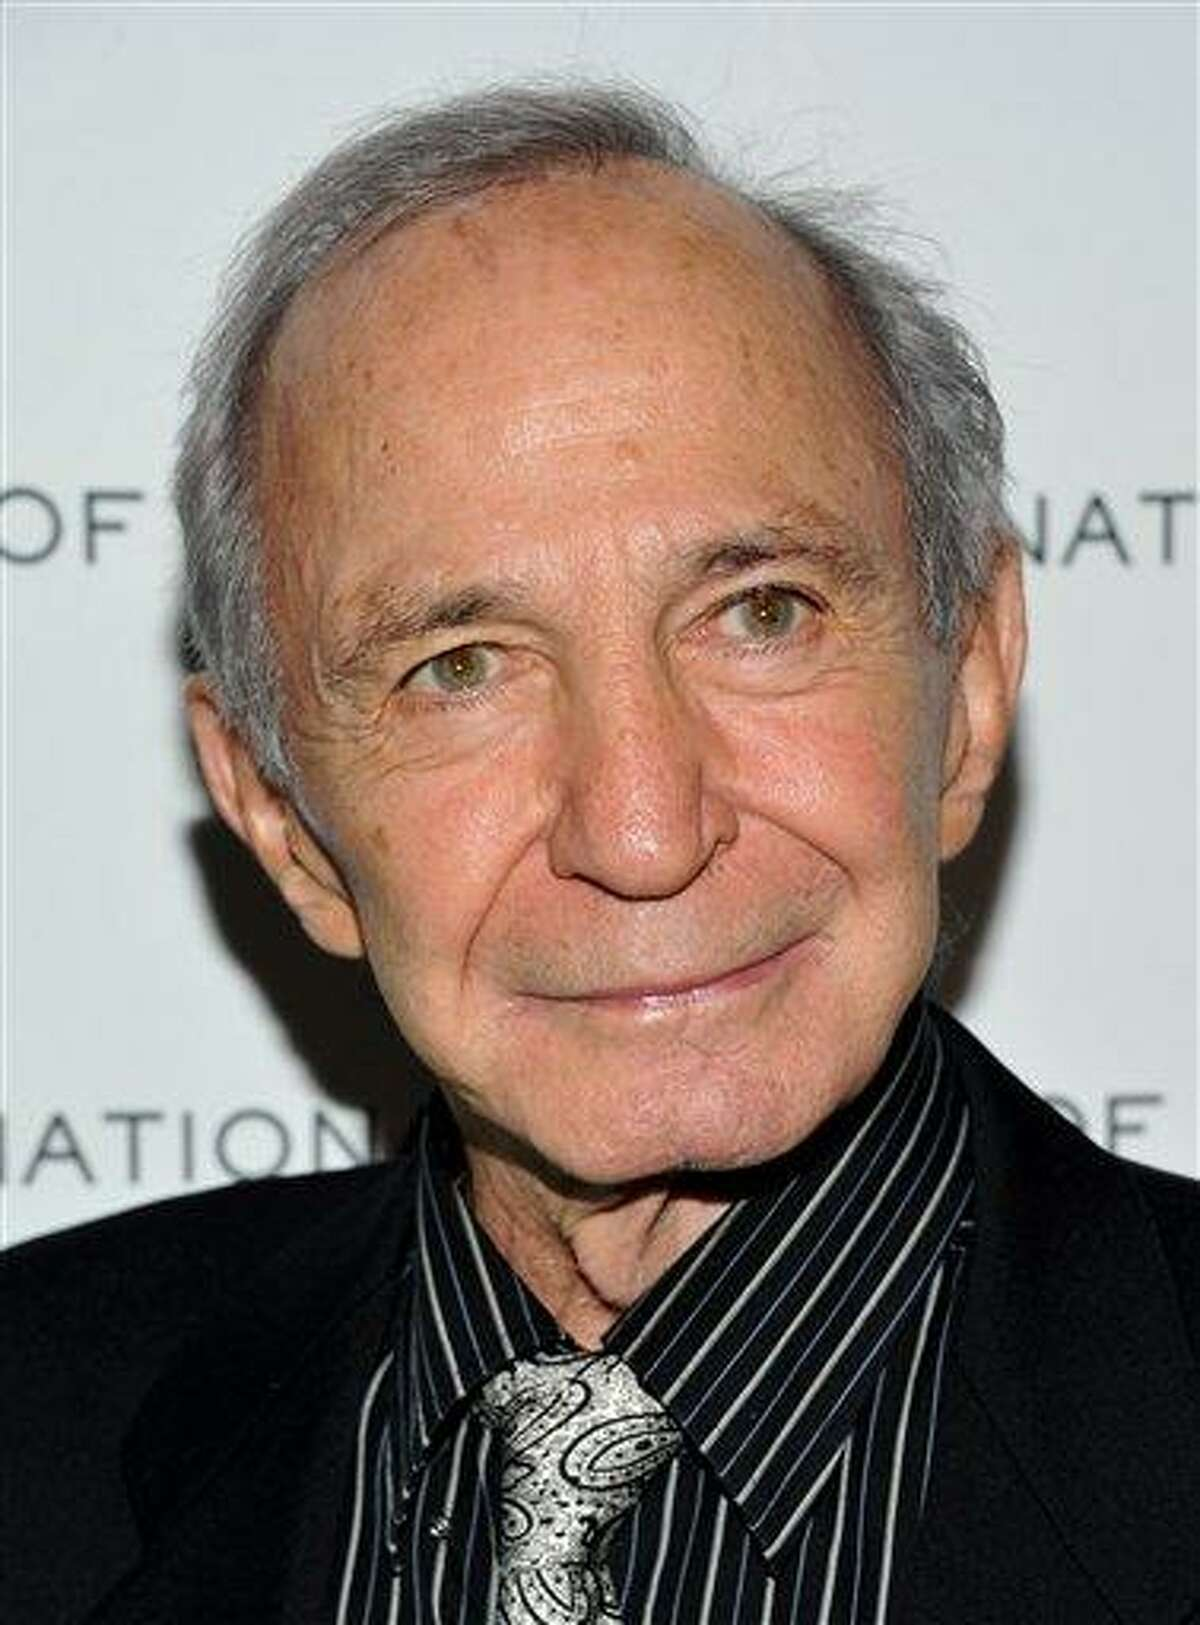 FILE - In this Jan. 11, 2011 file photo, actor Ben Gazzara attends The National Board of Review of Motion Pictures awards gala in New York. Gazzara, whose powerful dramatic performances brought an intensity to a variety of roles and made him a memorable presence in films, on television and on Broadway in the original